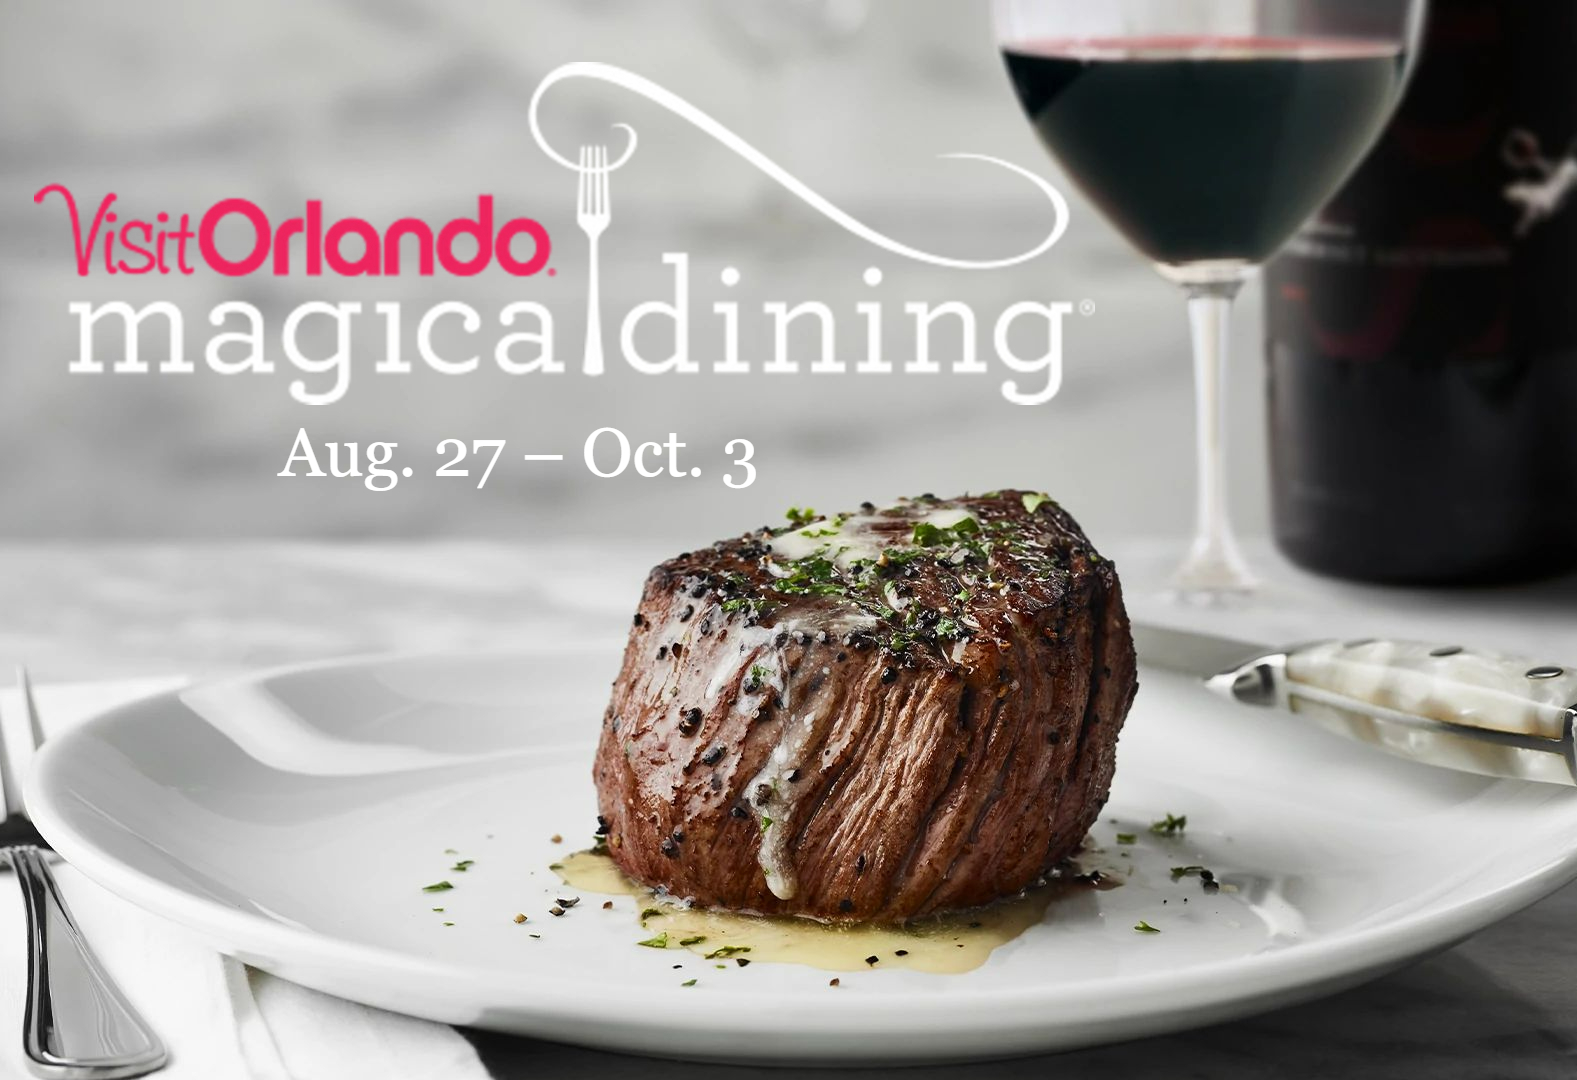 It's time to start planning your picks for Visit Orlando's 16th annual Magical Dining